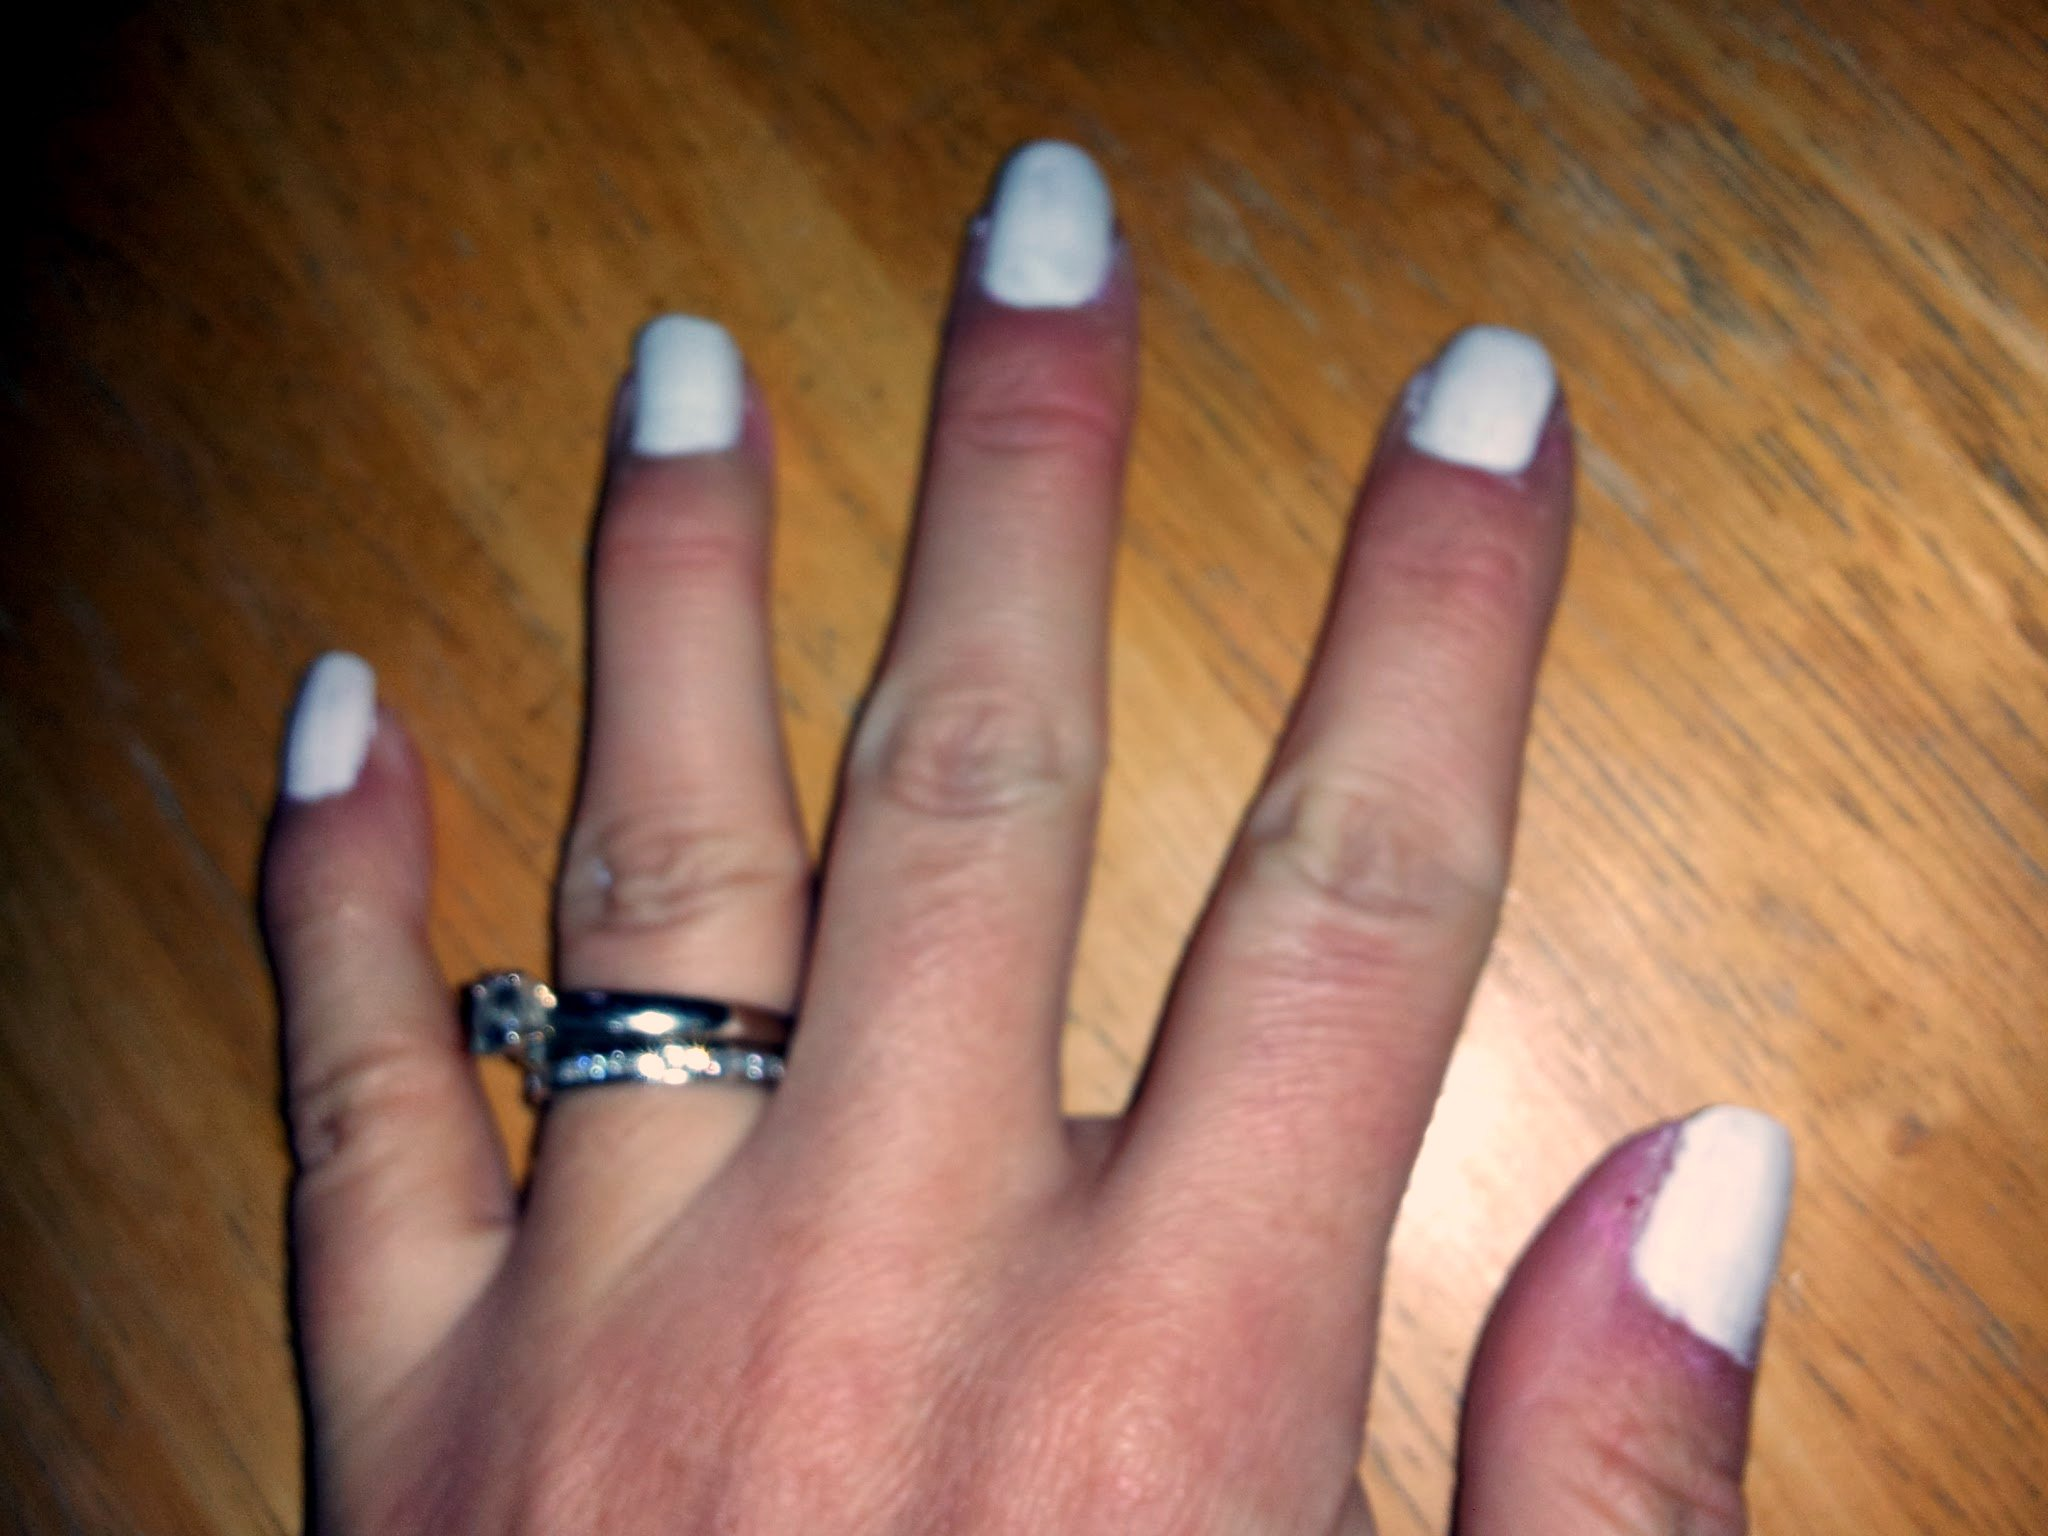 Nails with two coats of white polish